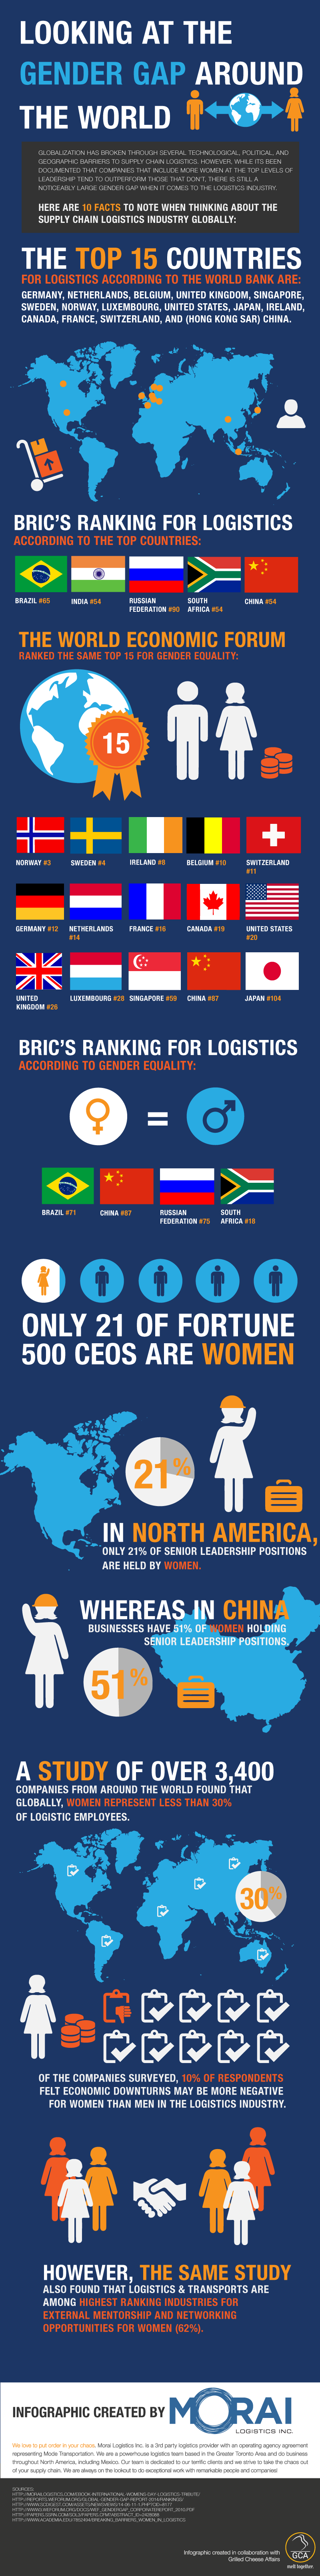 Morai-Logistics-Infographic-Looking-at-Gender-Gap